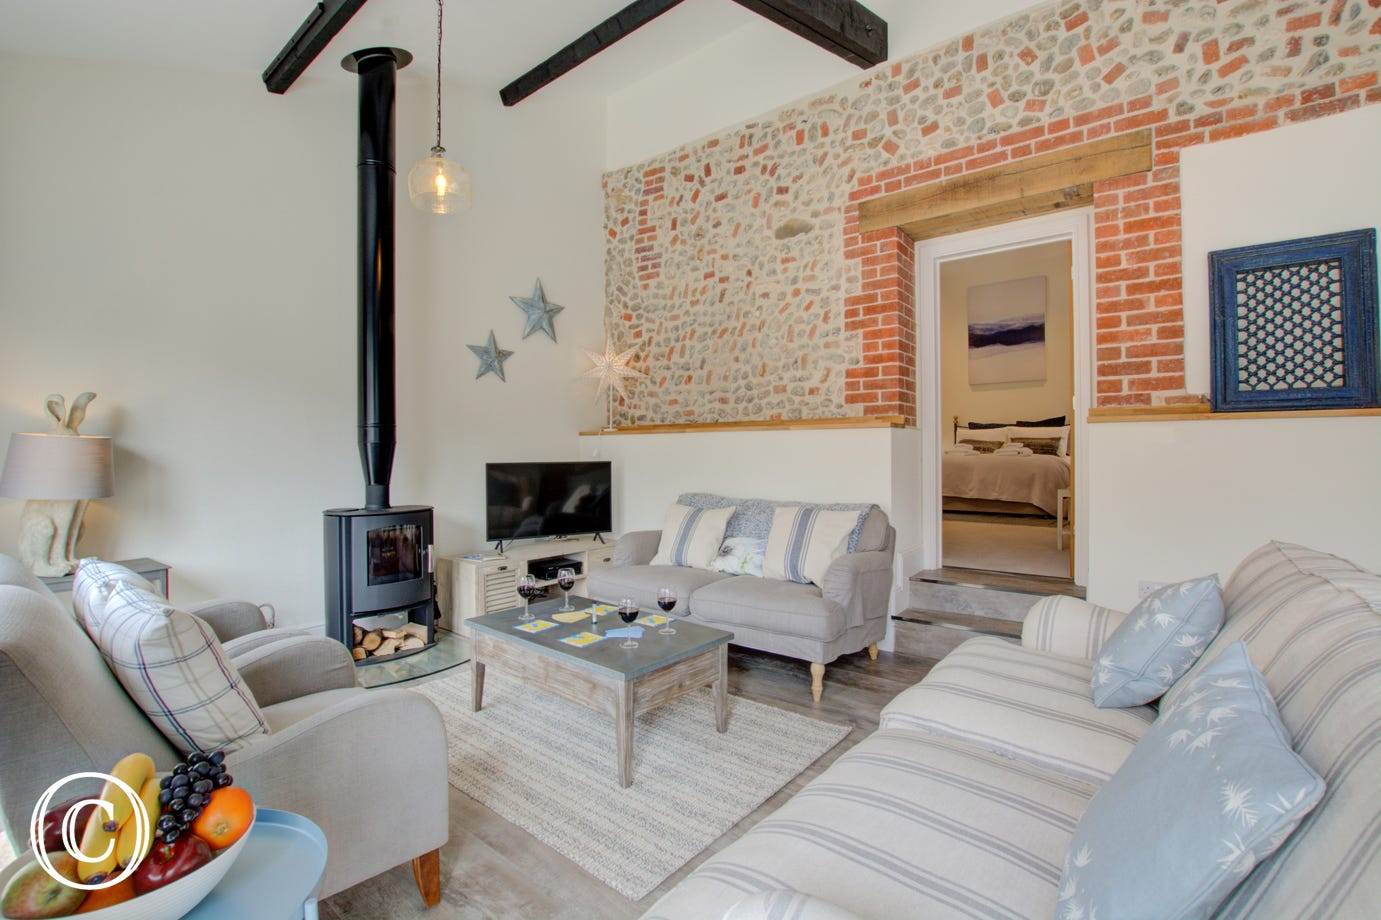 Open plan living room with comfortable seating, woodburner, tv & exposed brickwork